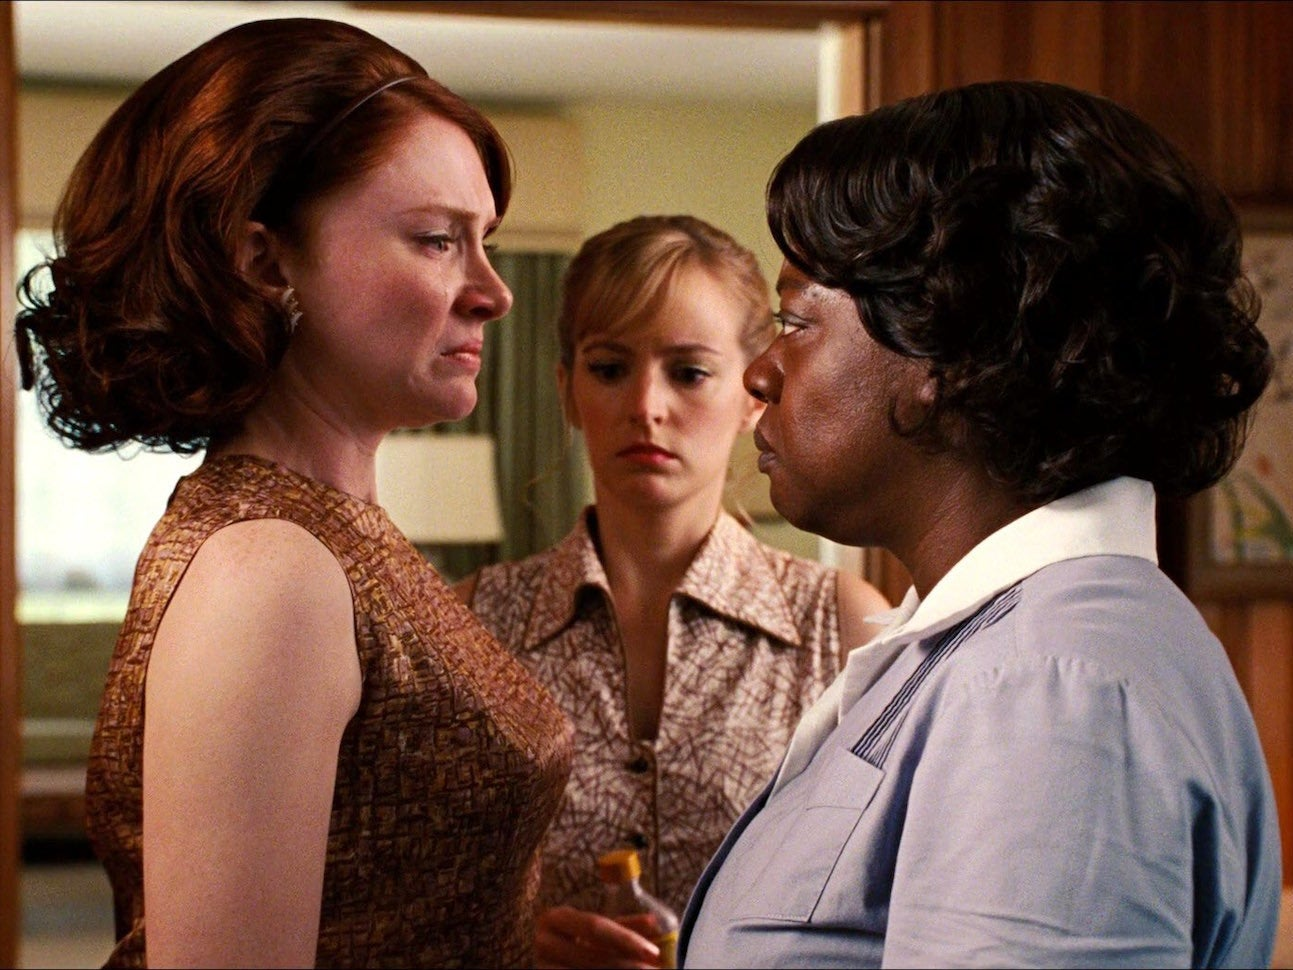 La actriz Bryce Dallas Howard no quiere que veas The Help